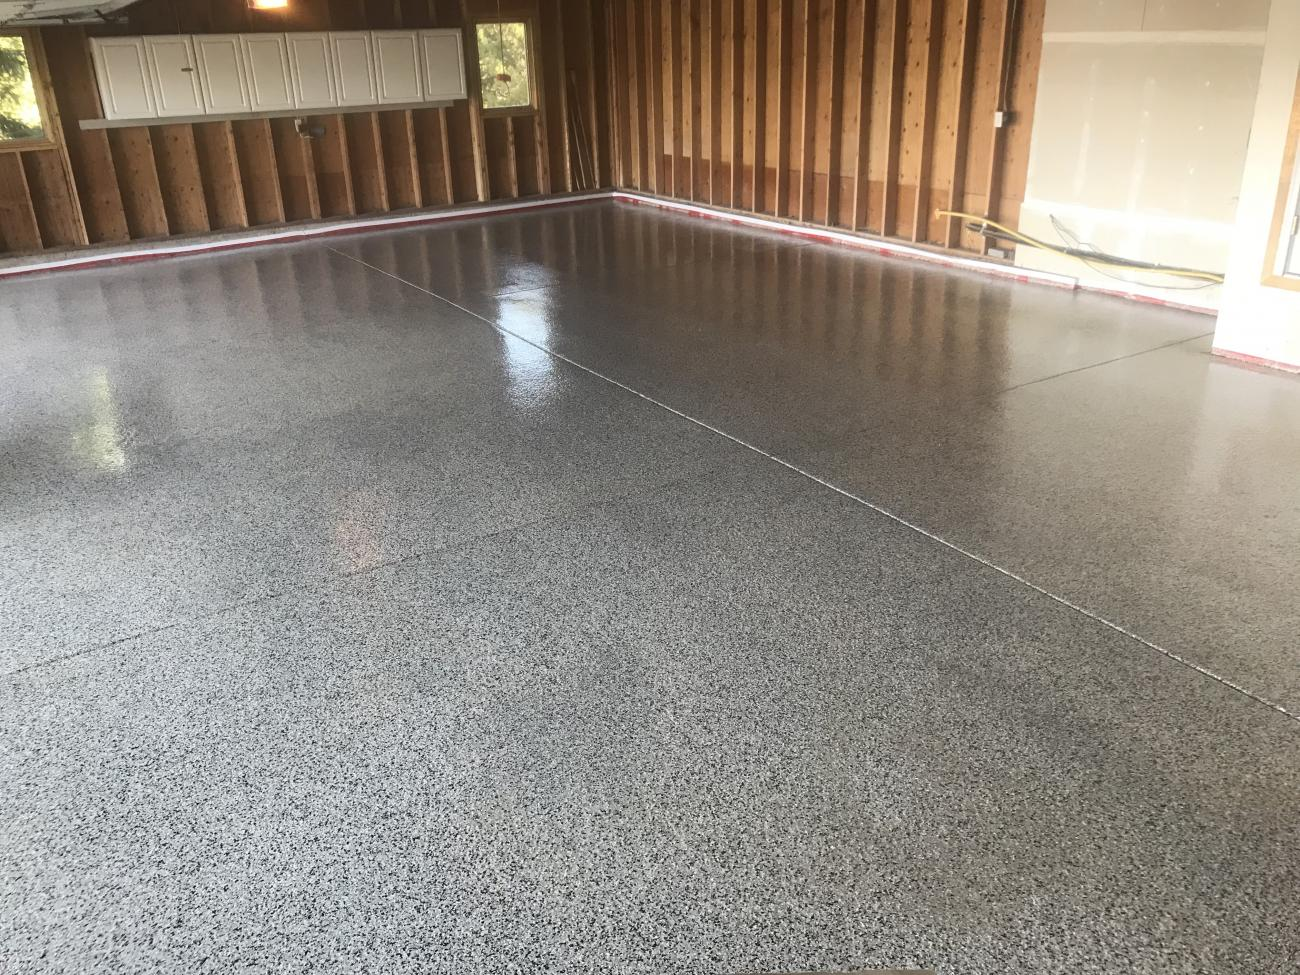 Garage Epoxy With Flakes Epoxies Polyaspartics 5280 Floors